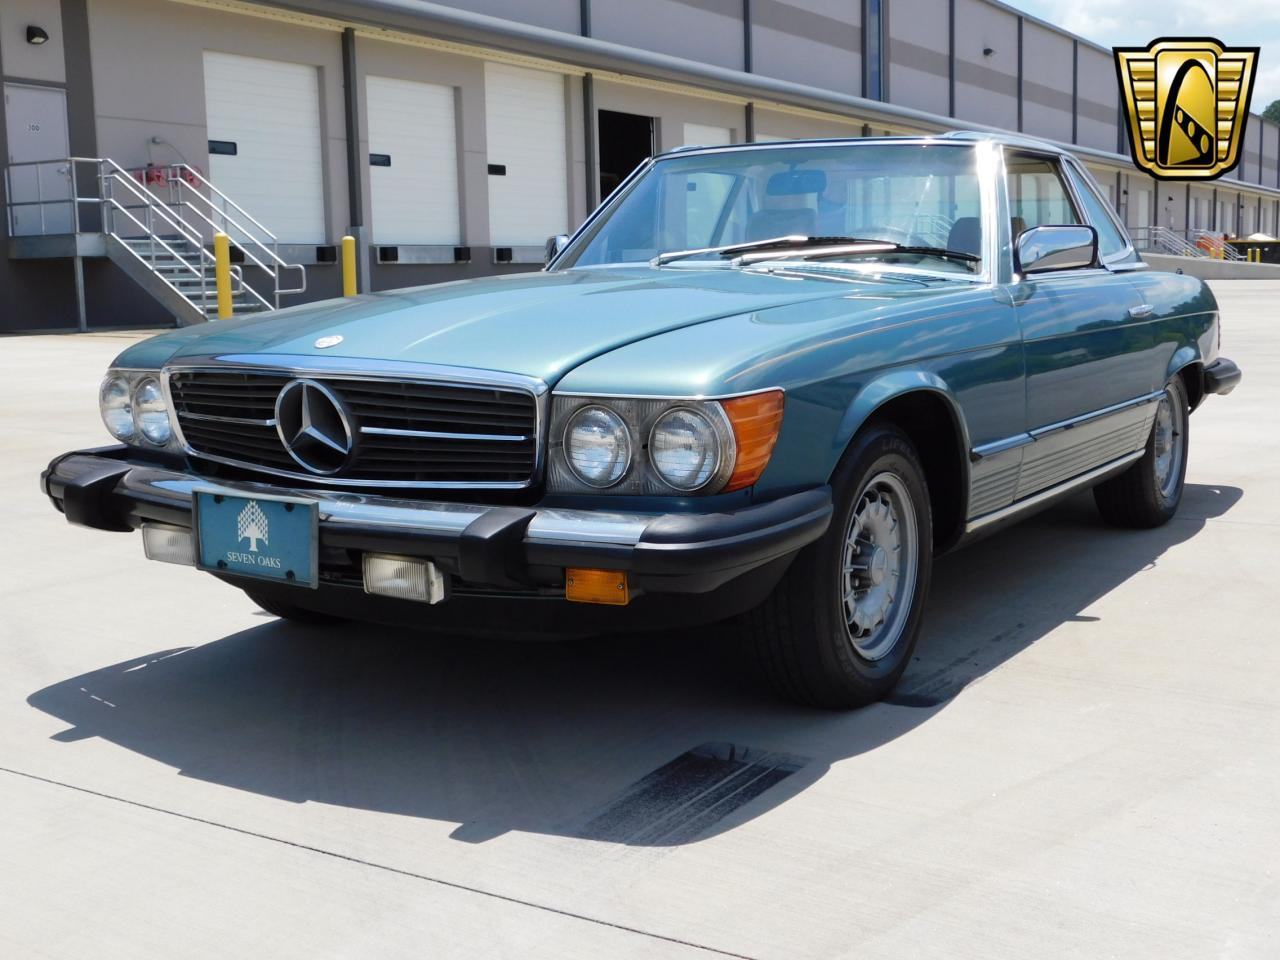 Large Picture of '85 Mercedes-Benz 380SL located in Alpharetta Georgia - $13,595.00 - LBSX